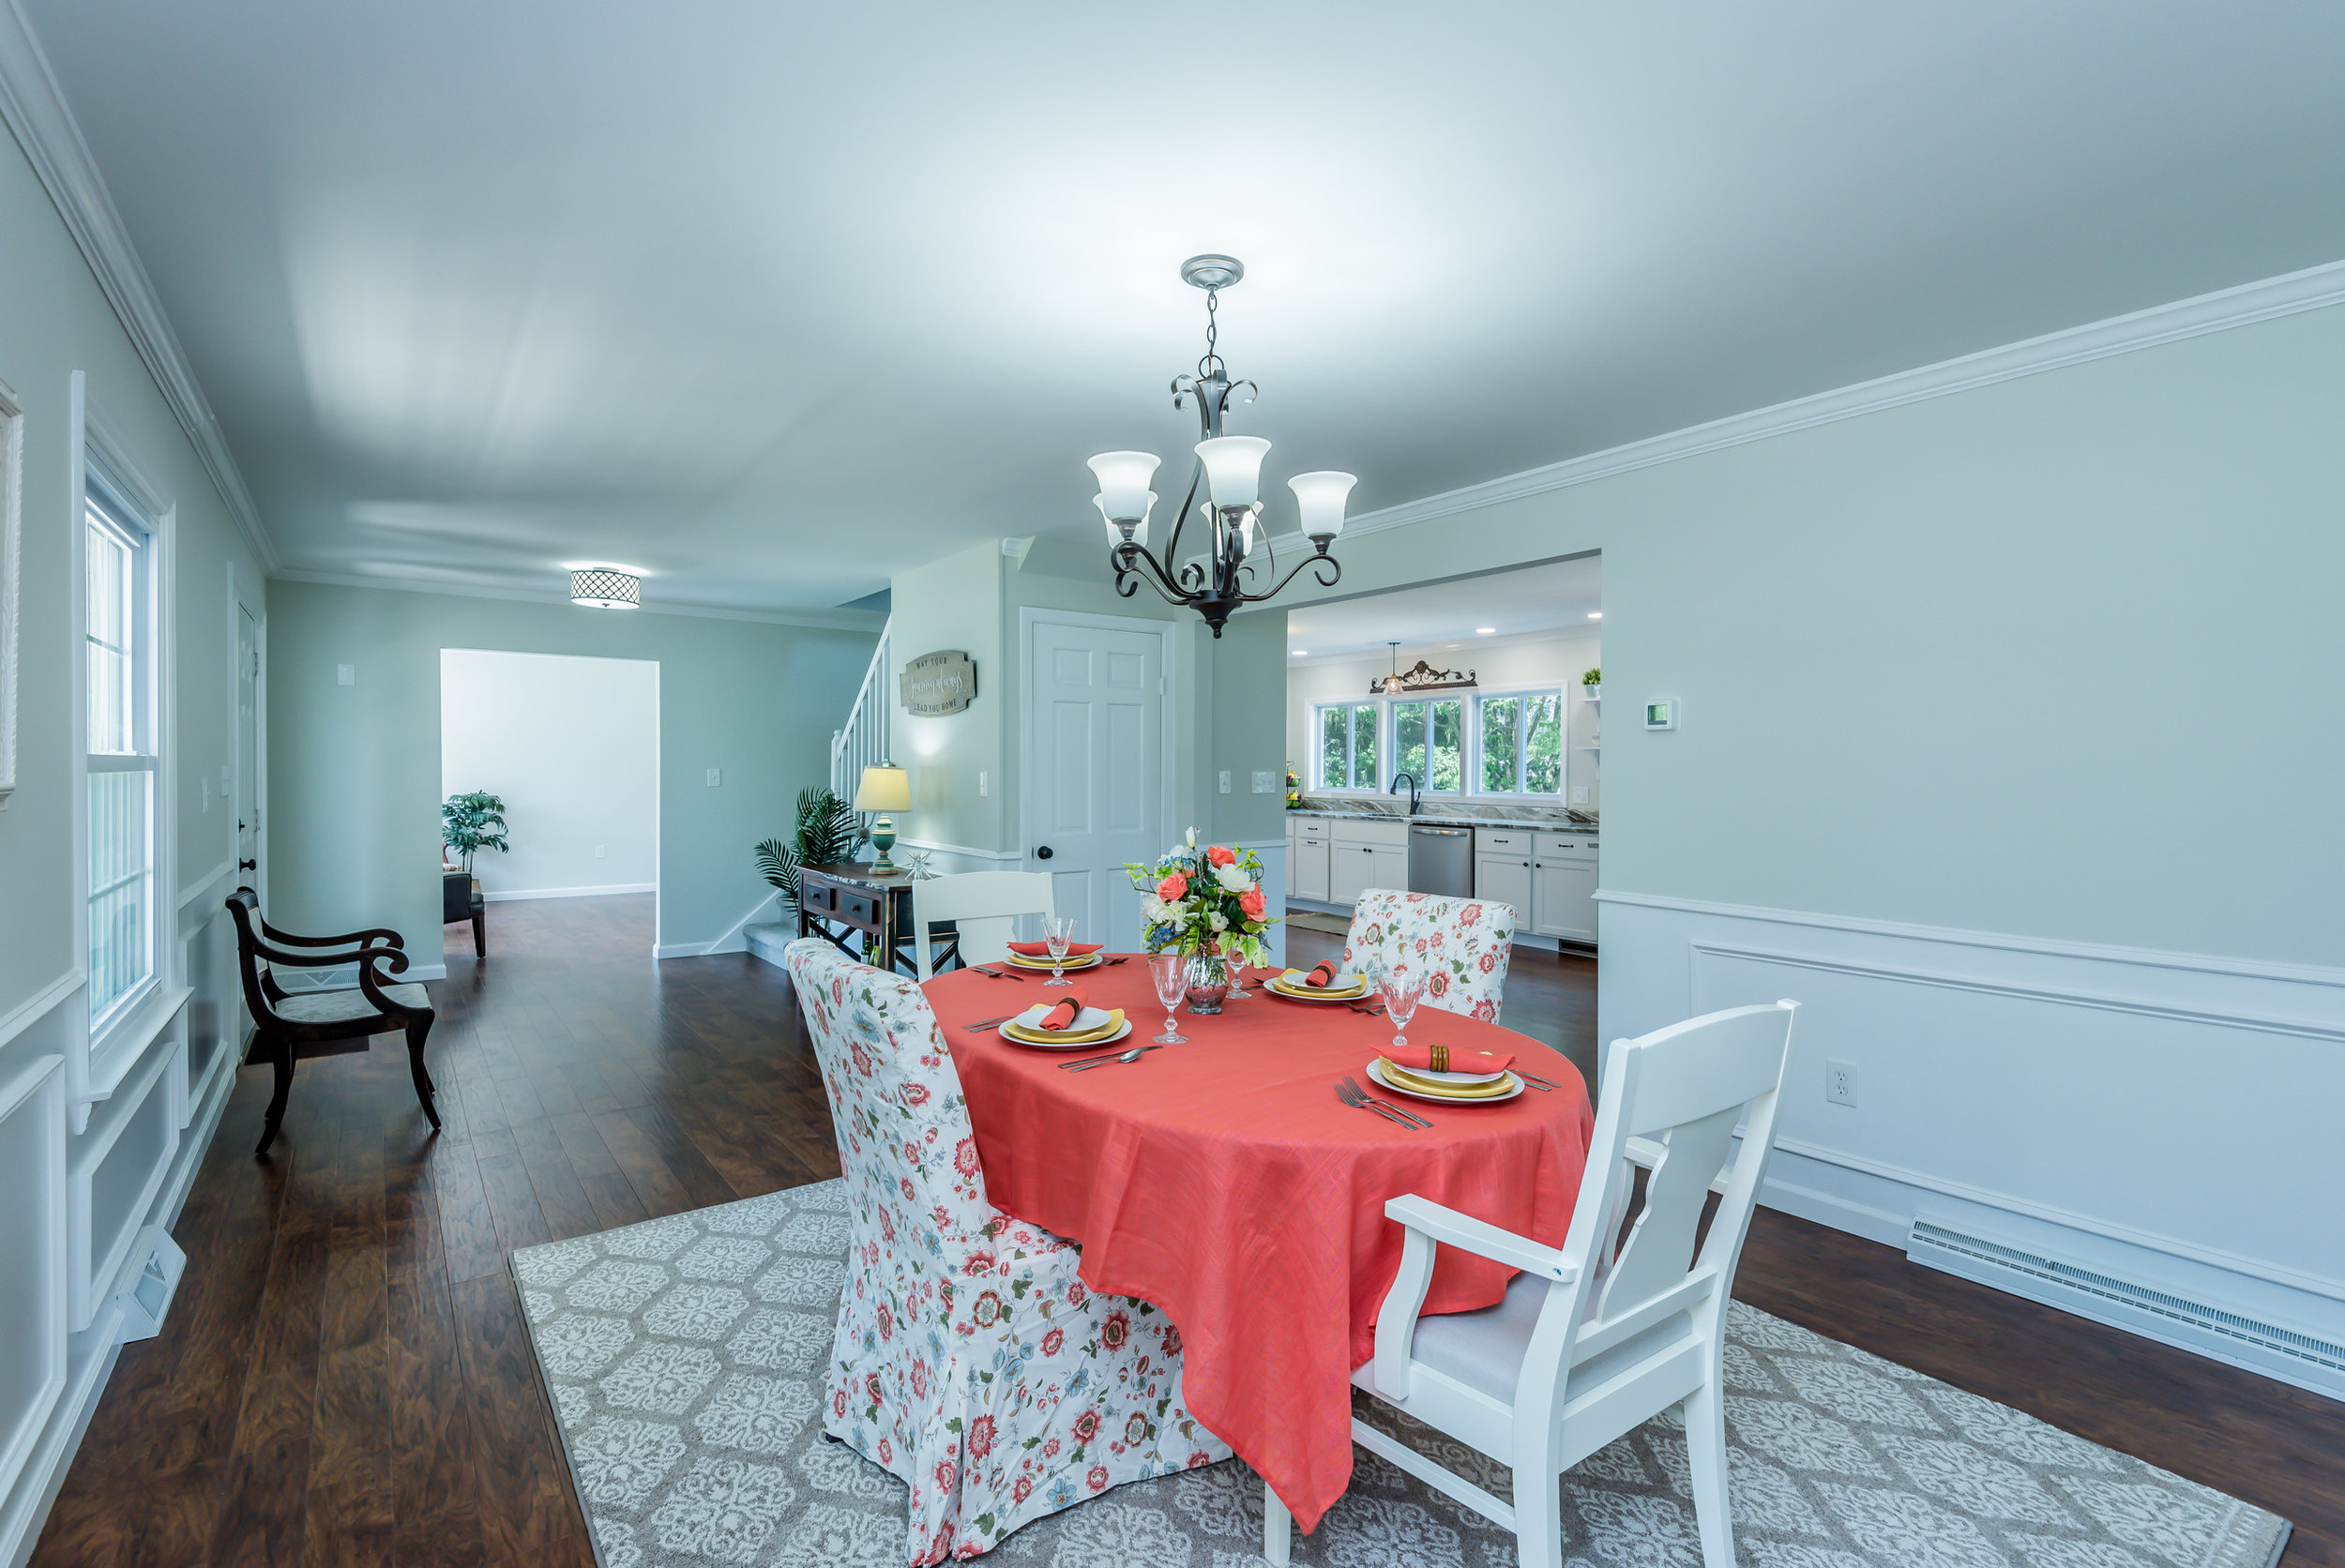 dining_room_view_1_of_1_.jpg